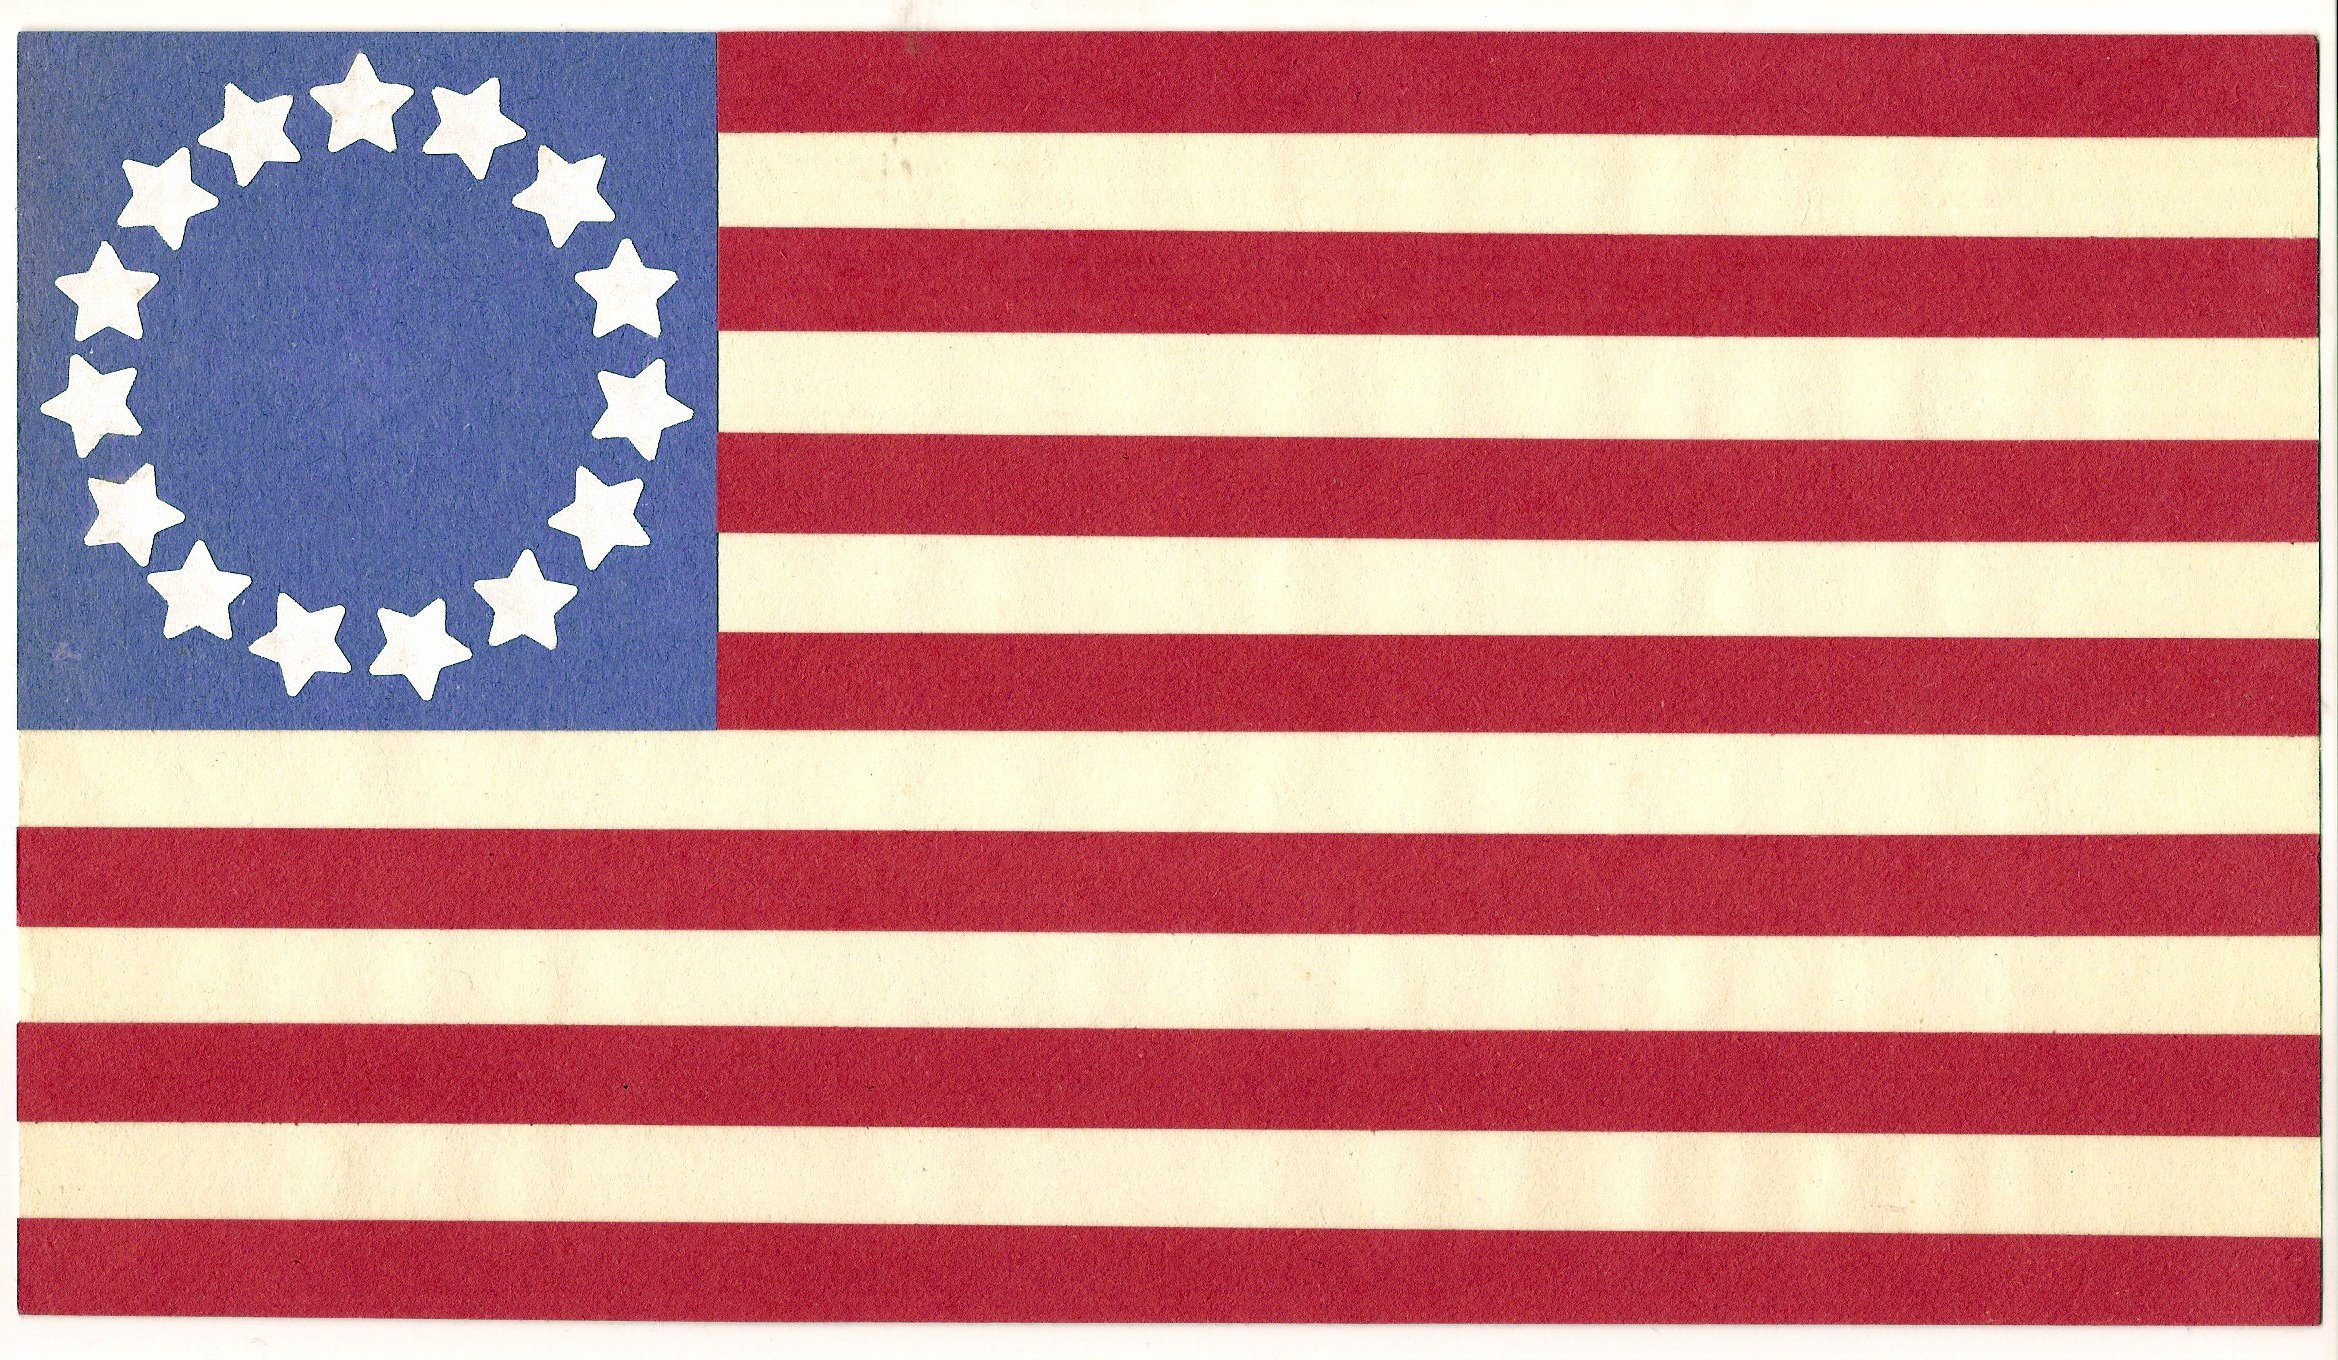 on American Flag 13 Colonies Coloring Page